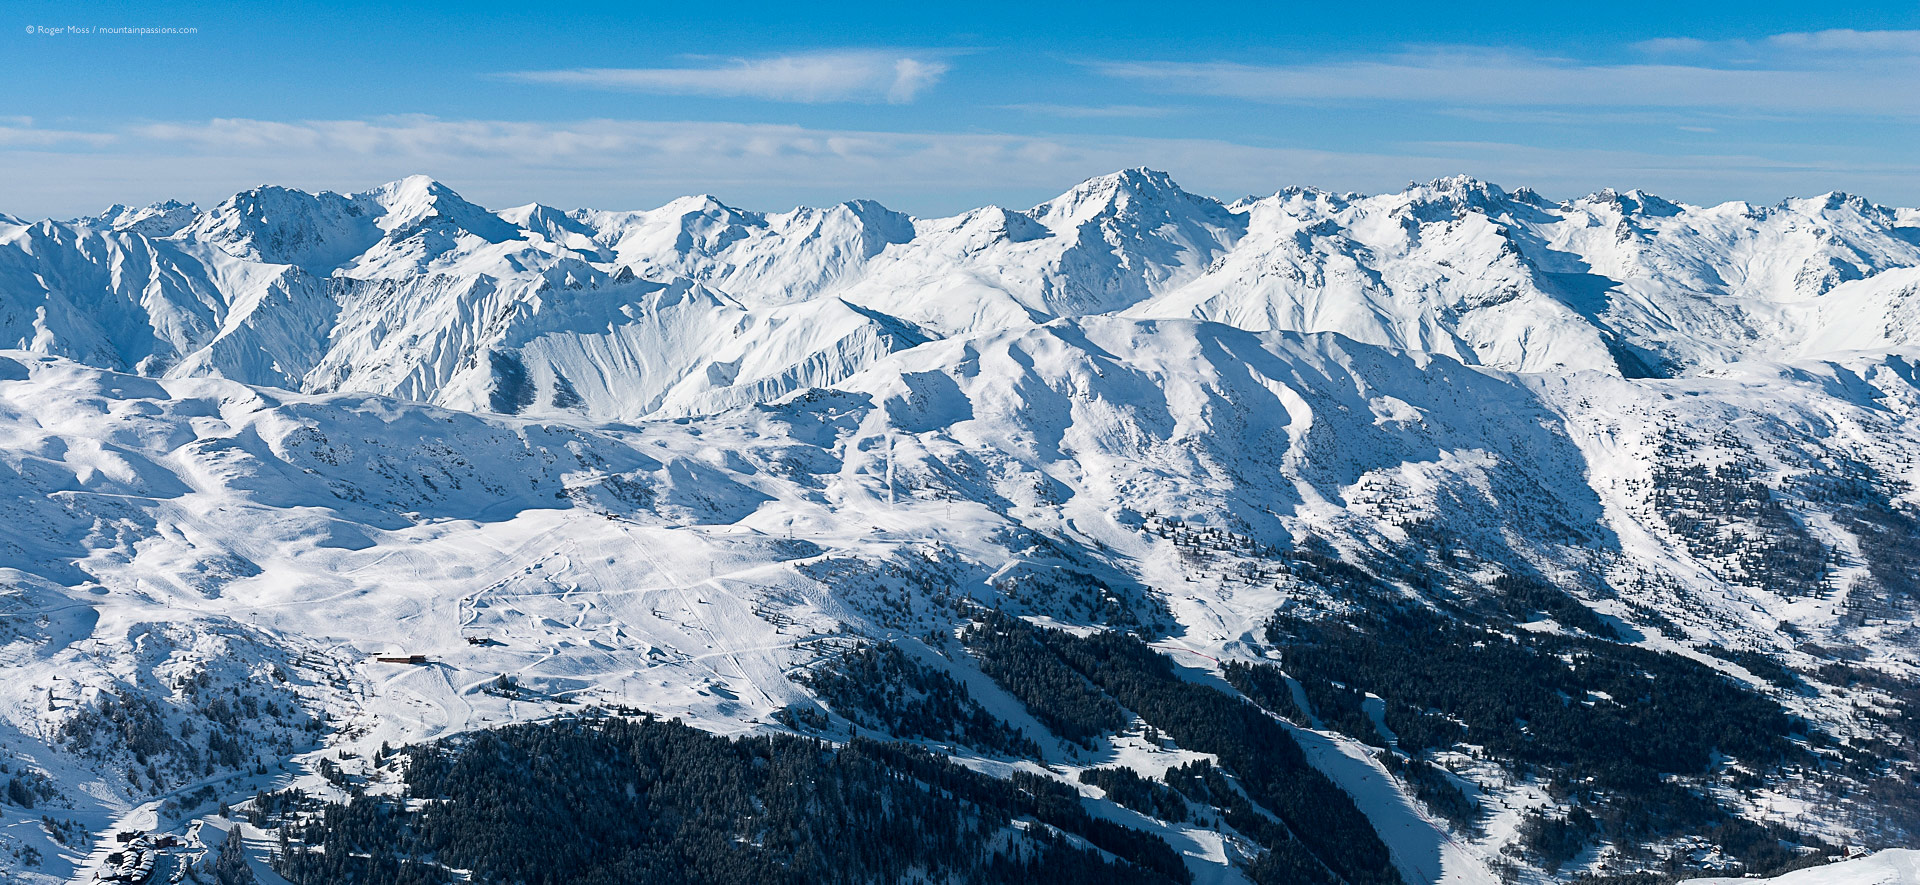 The 3 Valleys ski area, accessed from Brides-les-Bains